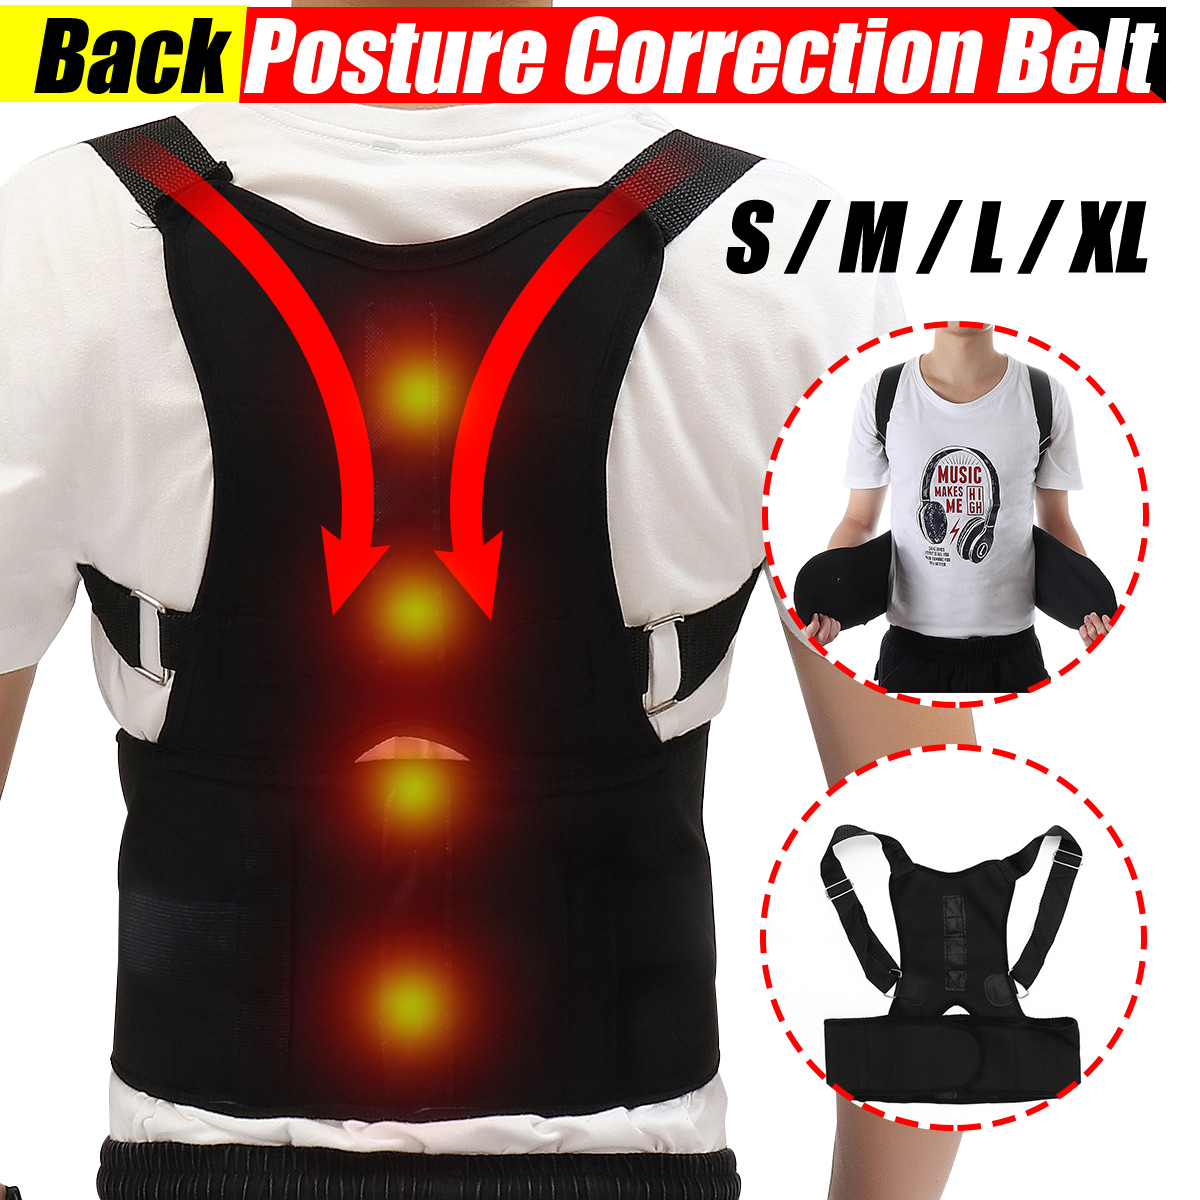 Adjustable Therapy Magnetic Back Waist Support Posture Corrector Belt Band Brace Shoulder Lumbar & Lower Back Support Belt Brace Strap Pain Relief Posture Waist Trimmer